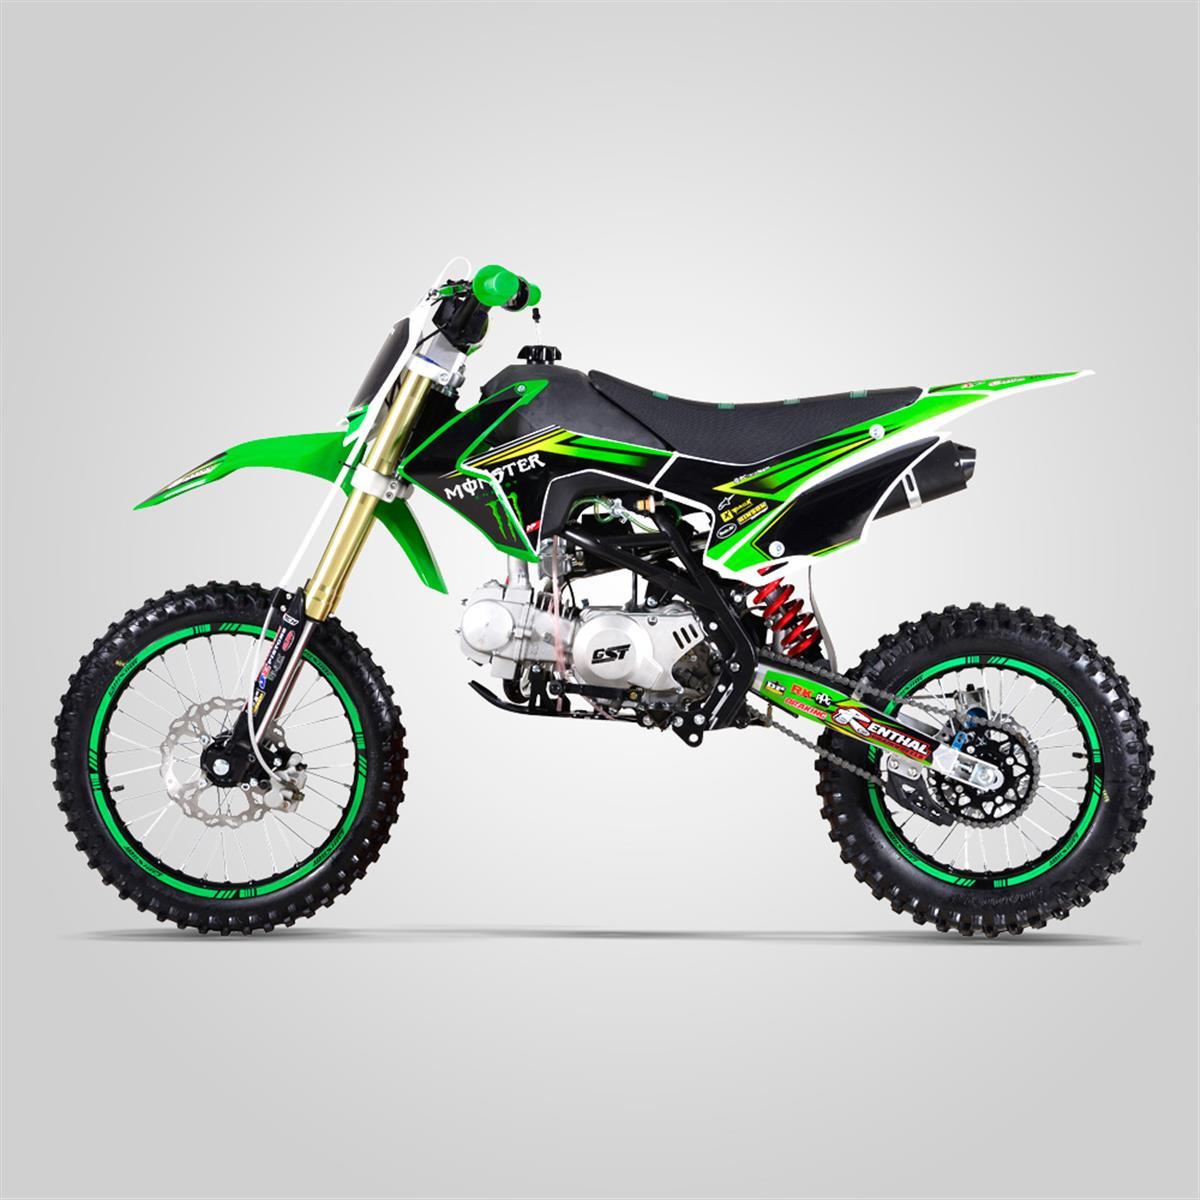 Dirt Bike GUNSHOT 140 FX MONSTER ENERGY 14/17 grande roue VERT